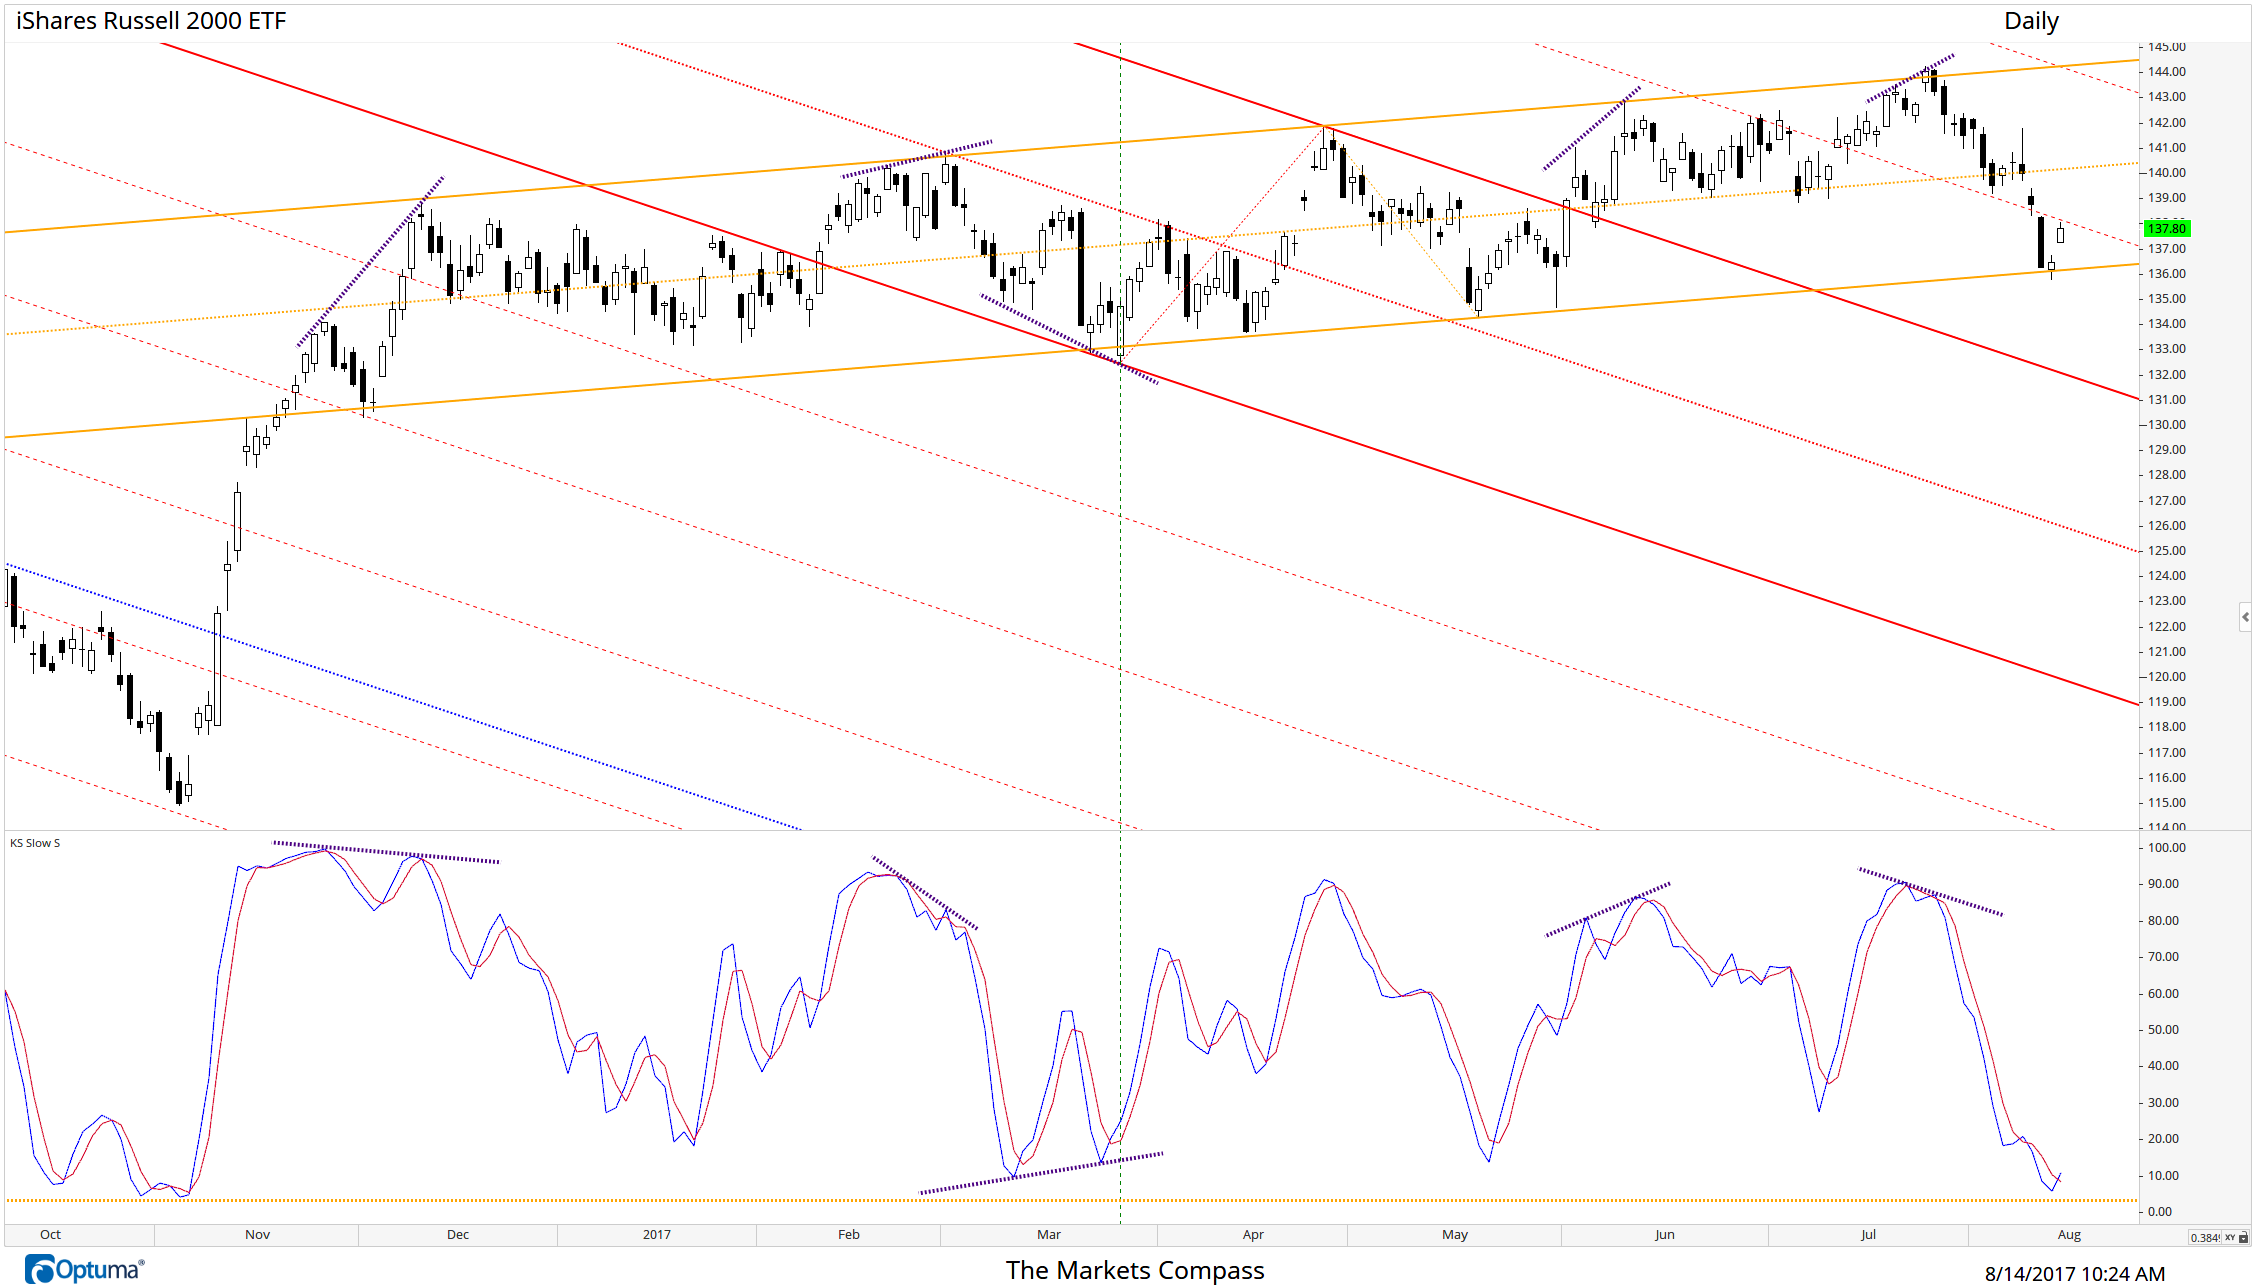 IWM Daily chart follow up...Prices held the lower parallel of the long standing channel created by the Schiff Adjusted Pitchfork (orange) and as of time of this post they have re-entered the range bound trading pattern although they now must contend with Upper Warning Line #1 of the Standard Pitchfork (red)